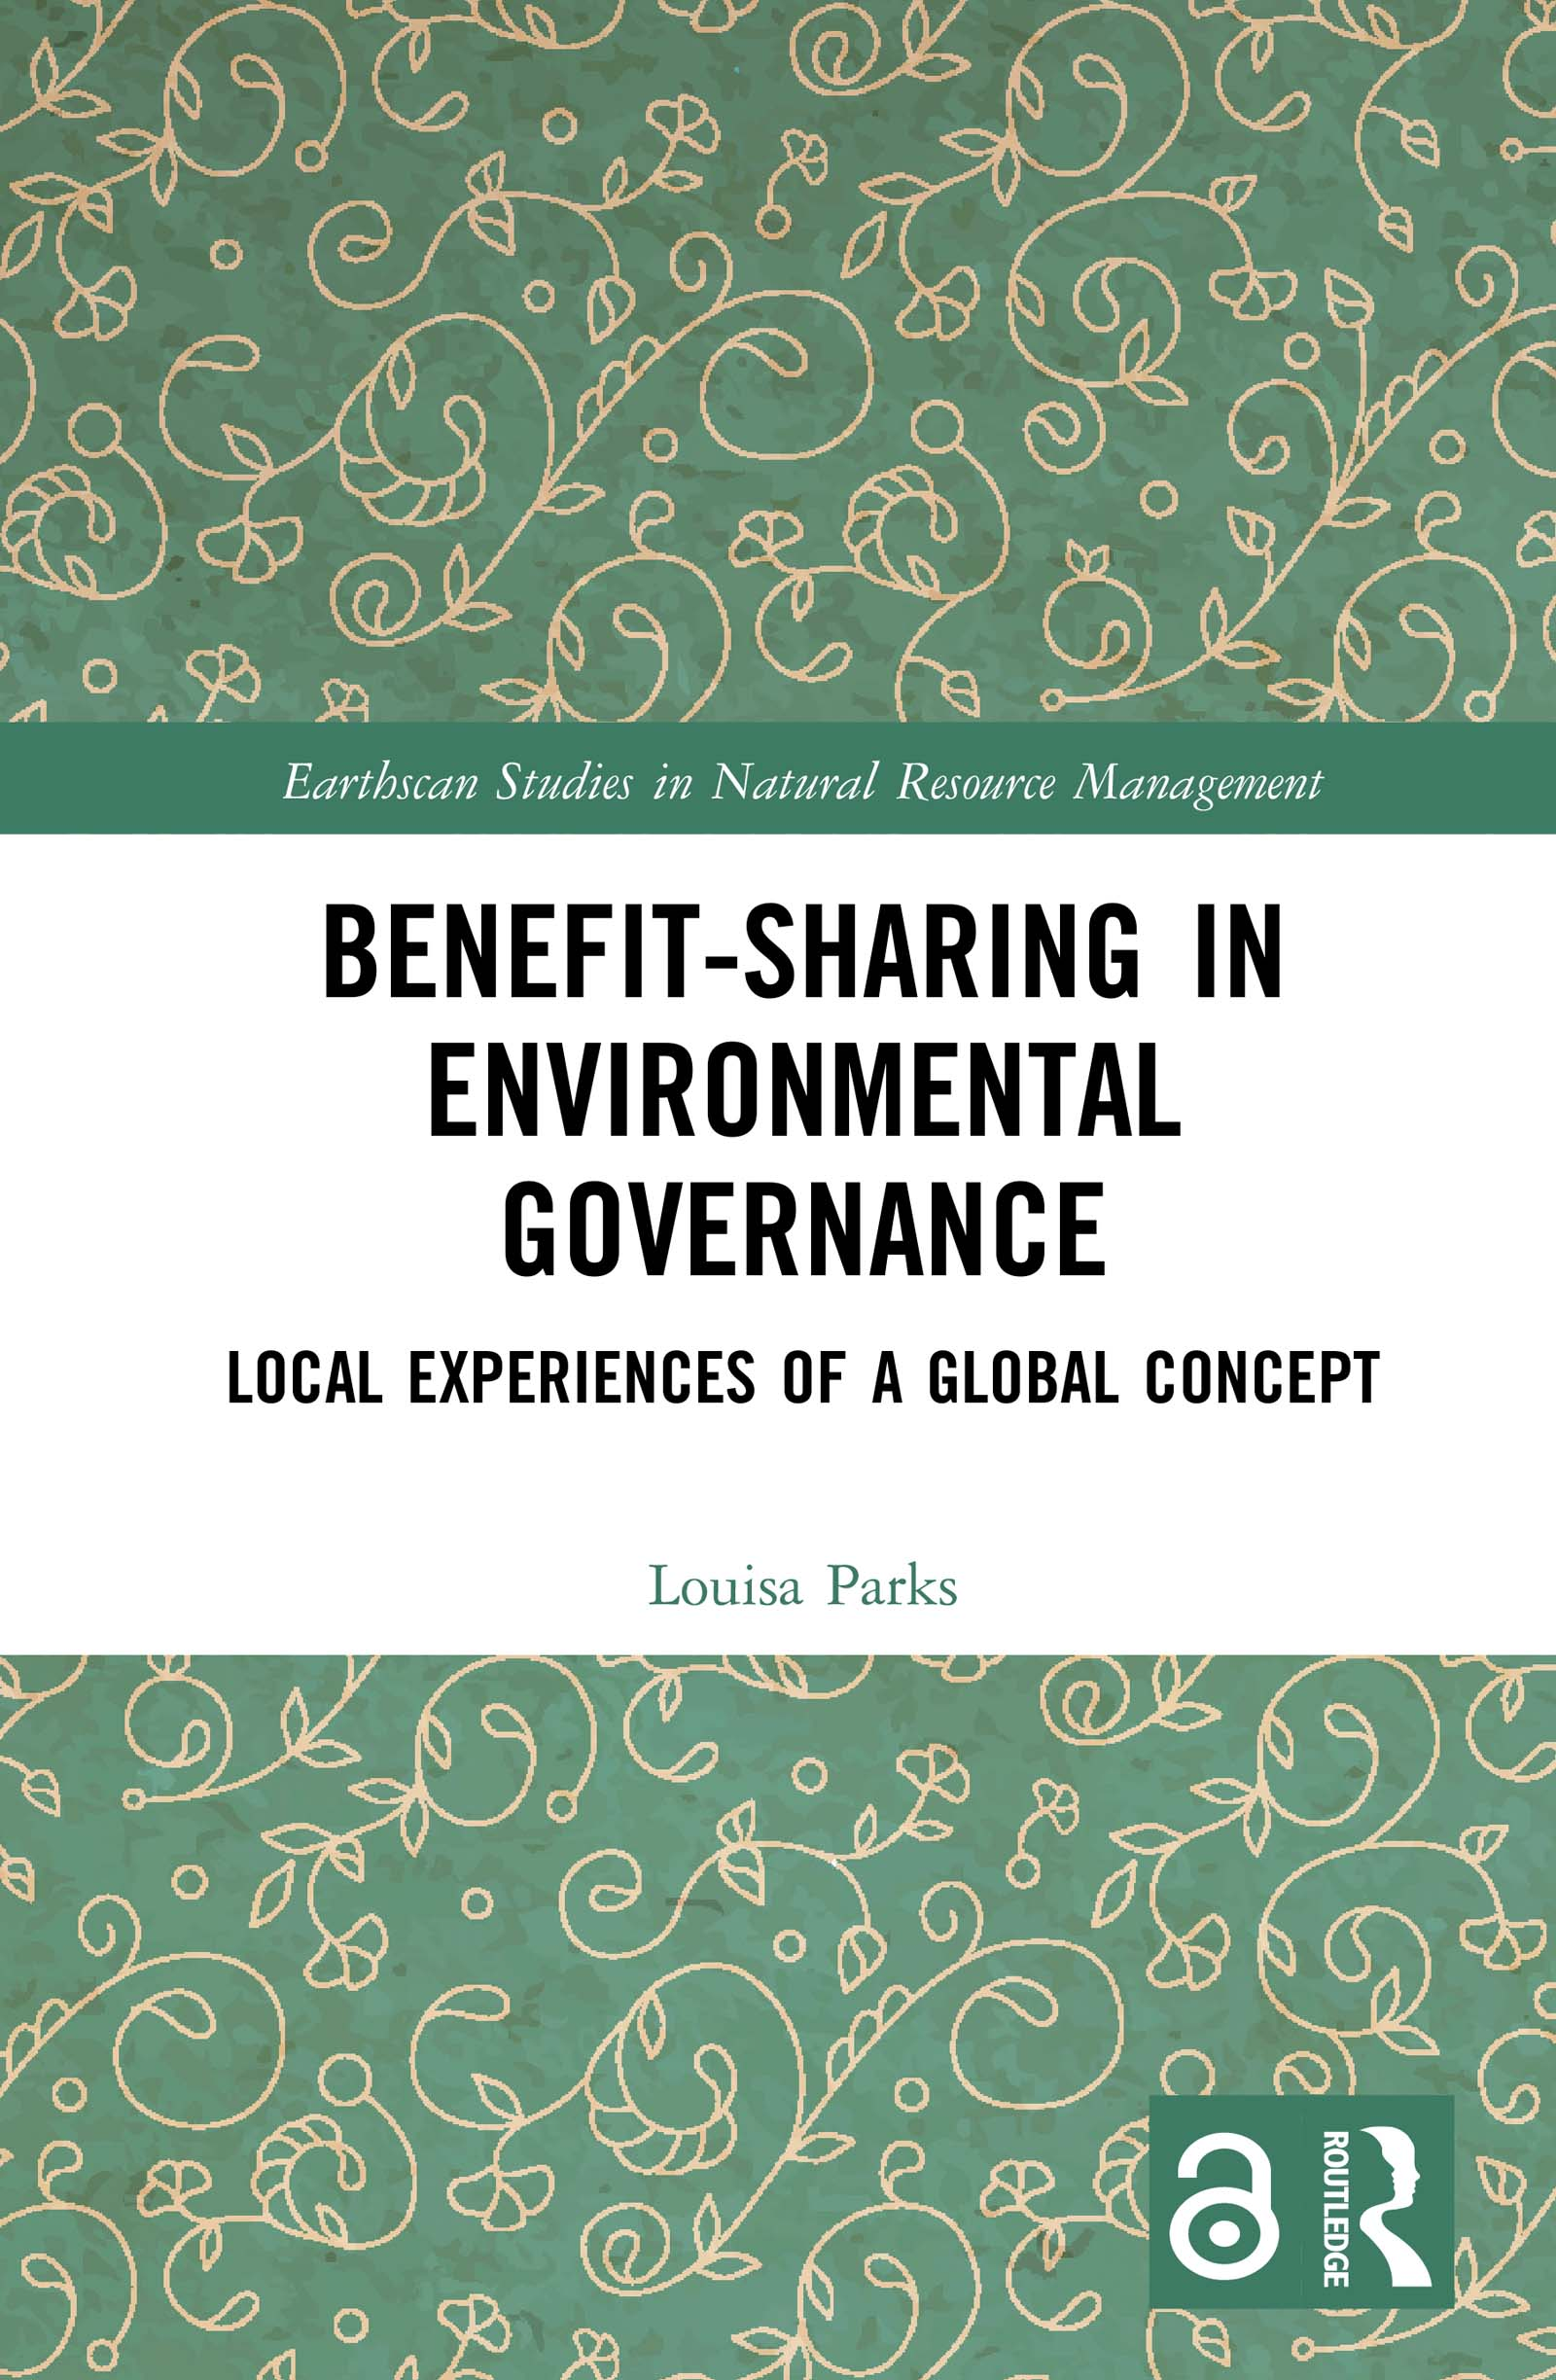 Benefit-sharing in Environmental Governance (Open Access): Local Experiences of a Global Concept book cover